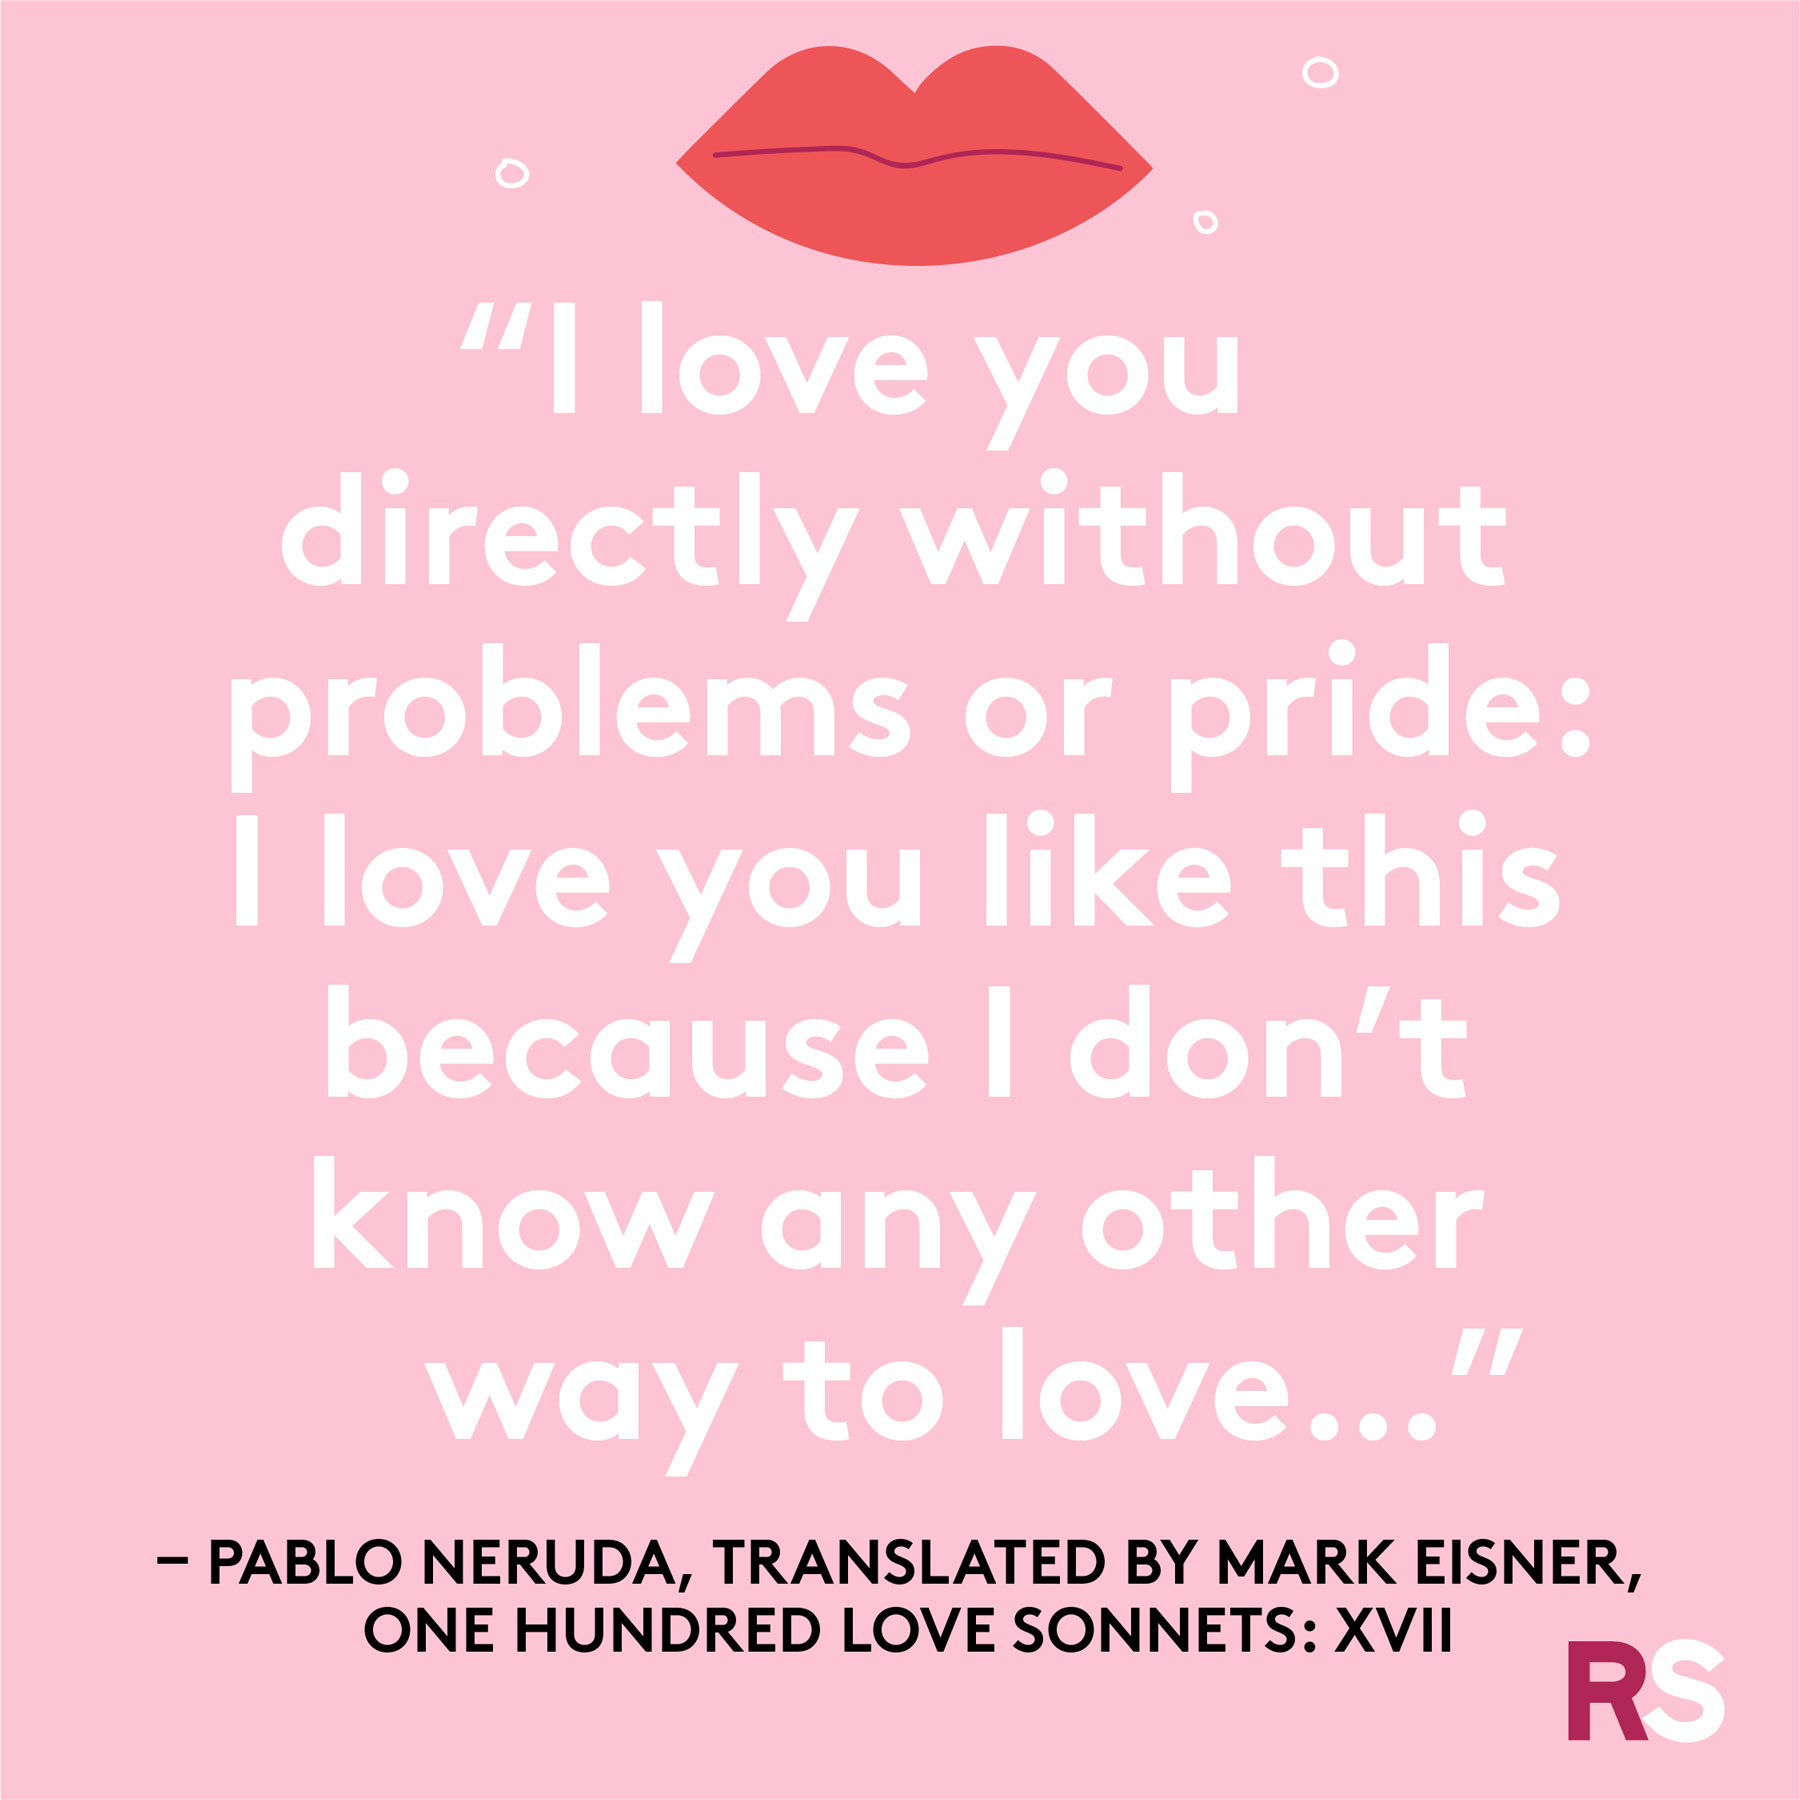 Love quotes, quotes about love - Pablo Neruda, translated by Mark Eisner, One Hundred Love Sonnets: XVII